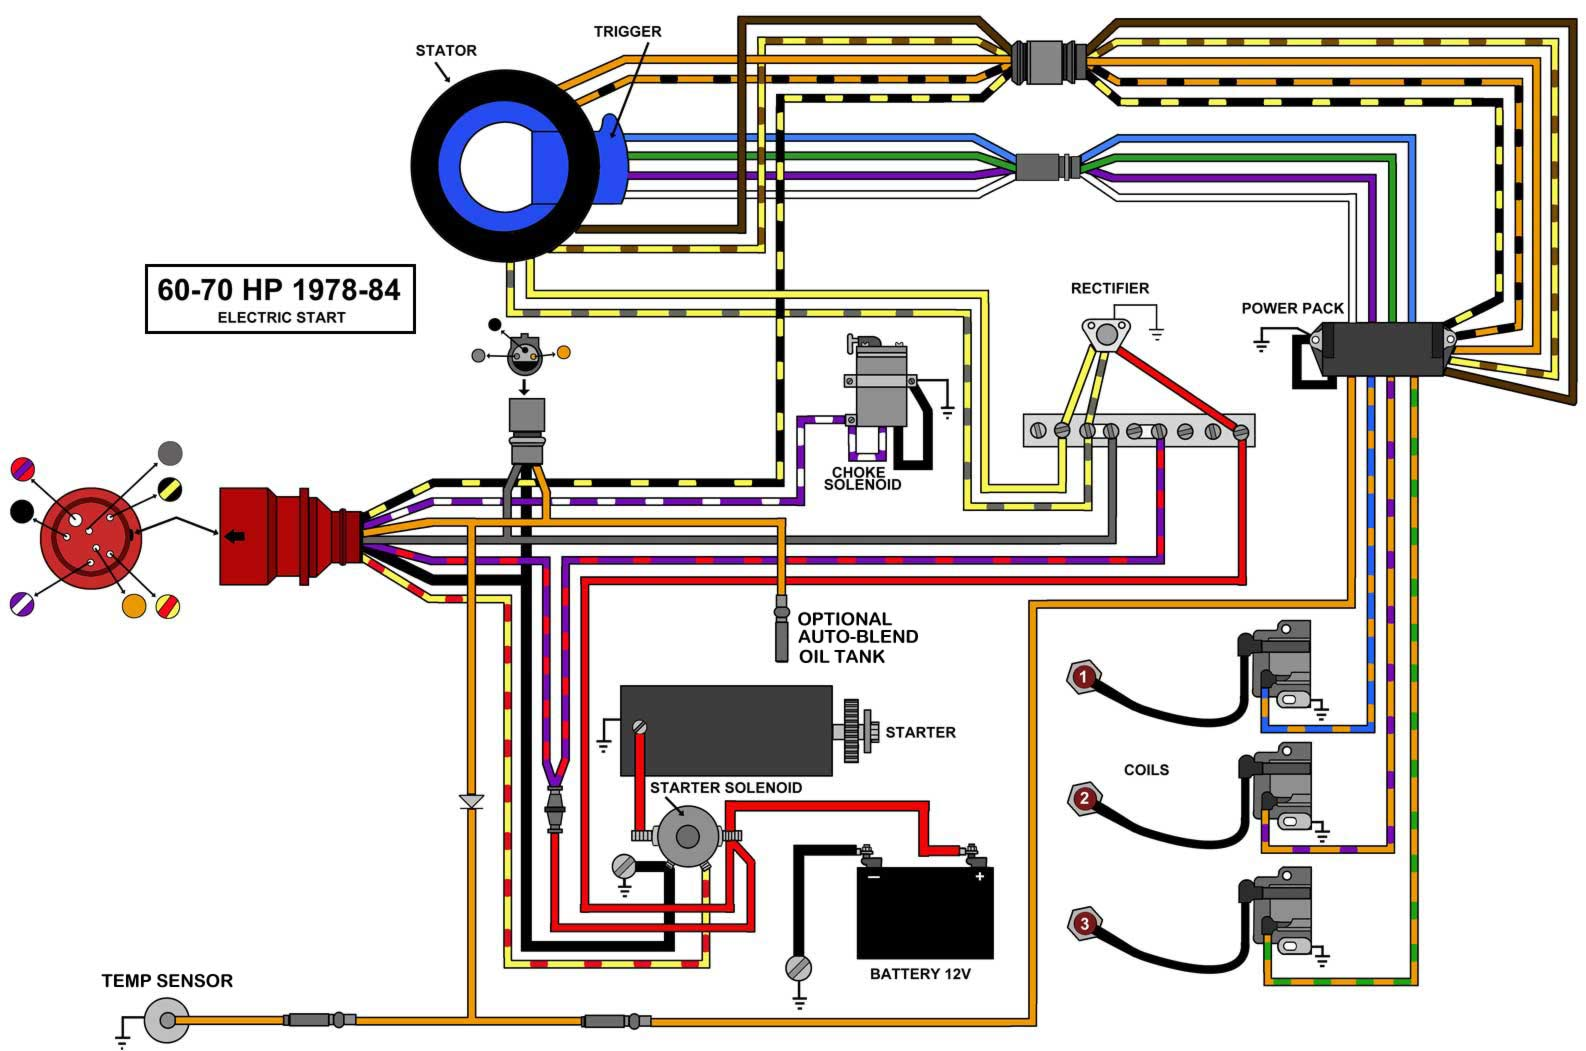 1976 70 Hp Johnson Wiring Diagram Wire Center Fet As A Vvrvoltage Variable Resistor Electronic Circuits And 1978 Outboard U2022 Rh Tinyforge Co 1993